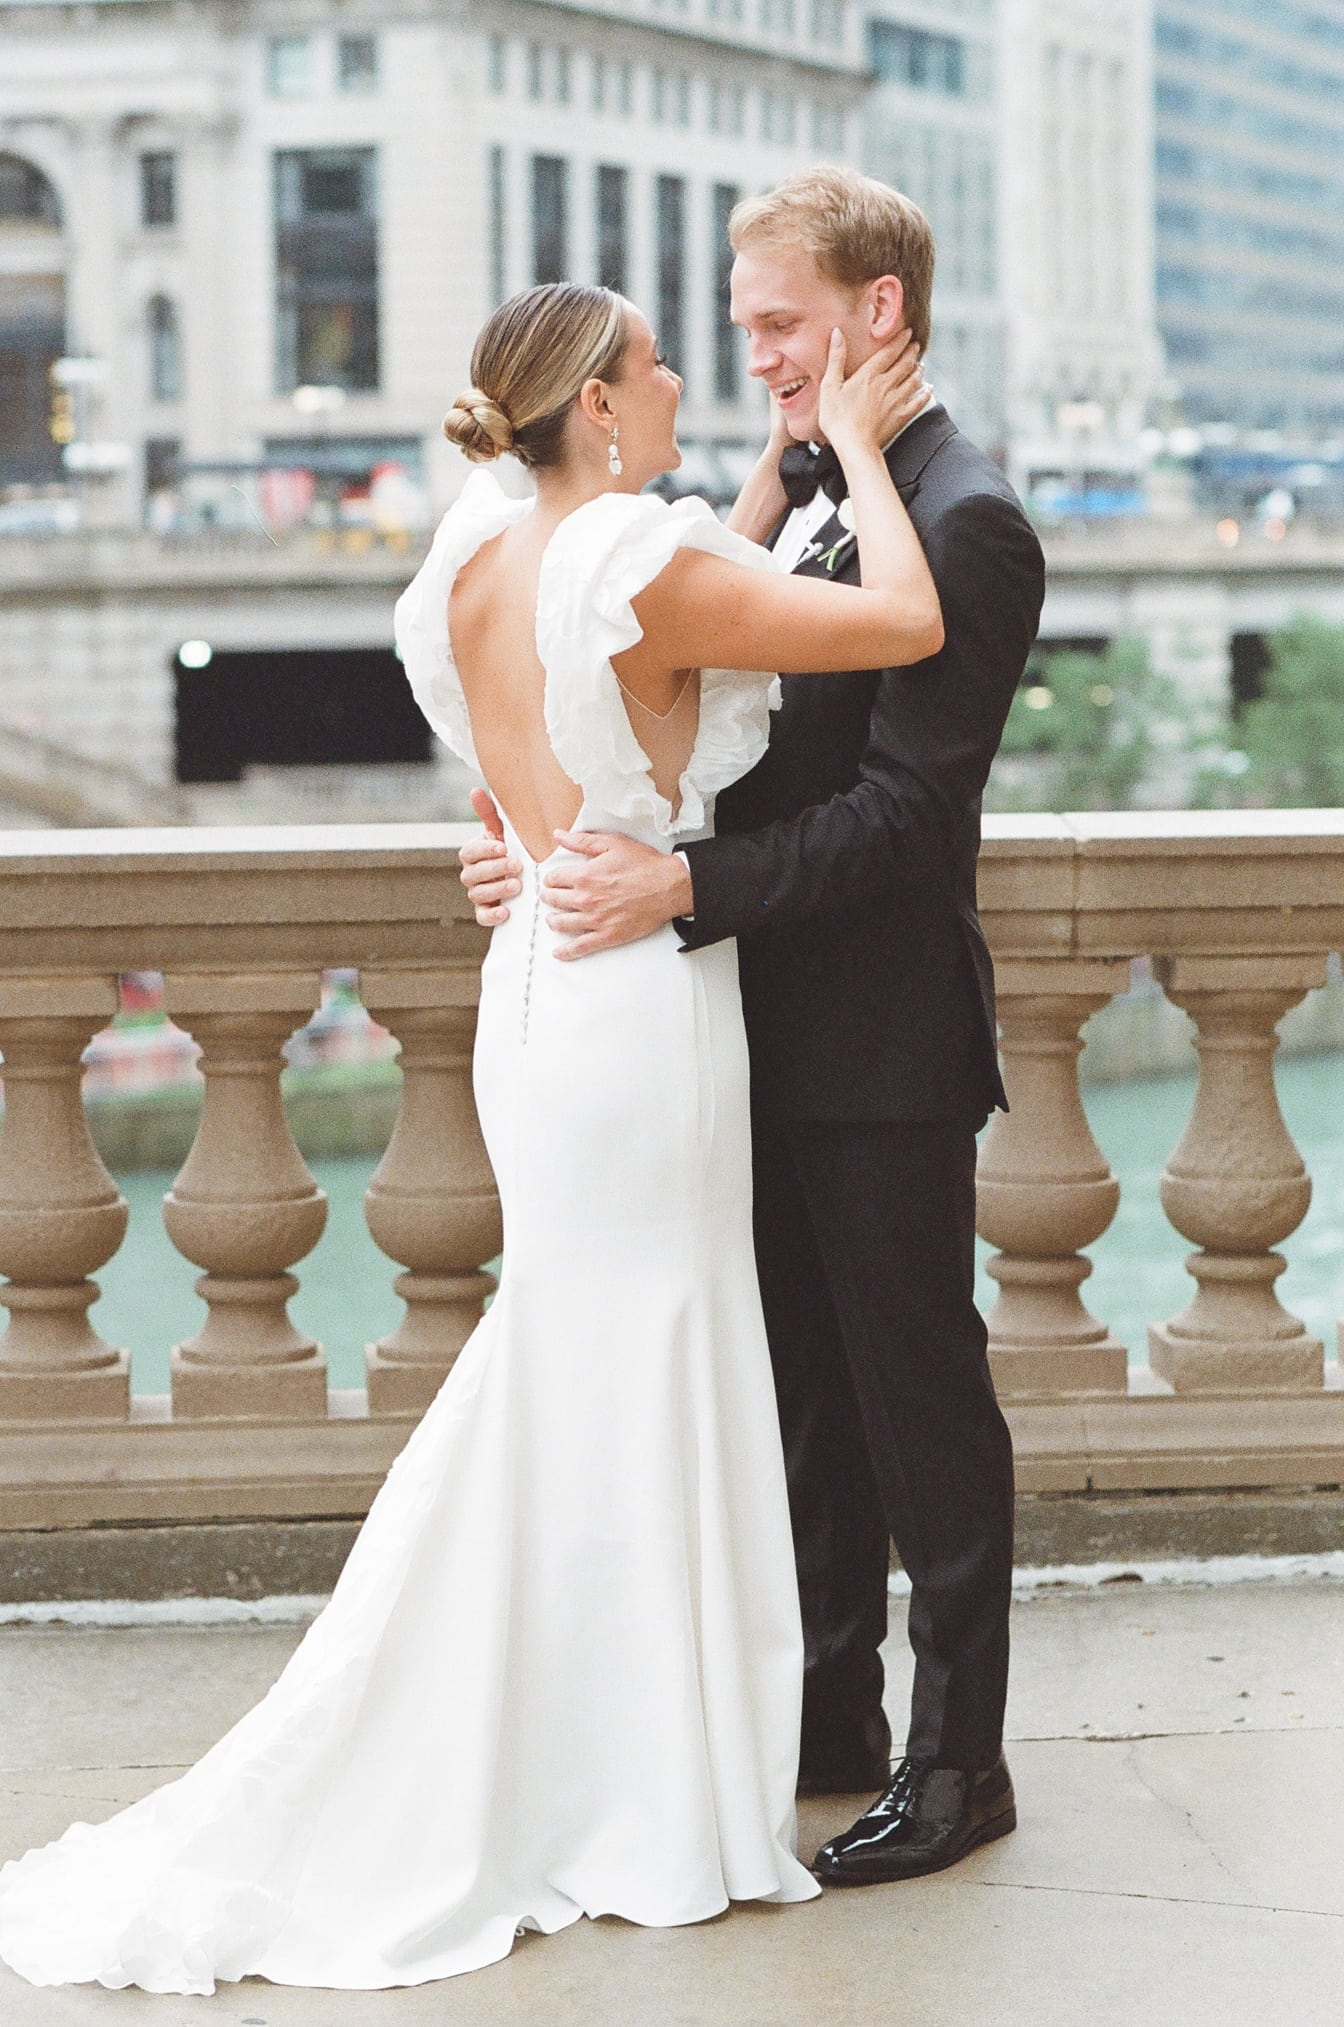 Bride and groom embracing each other at their first look